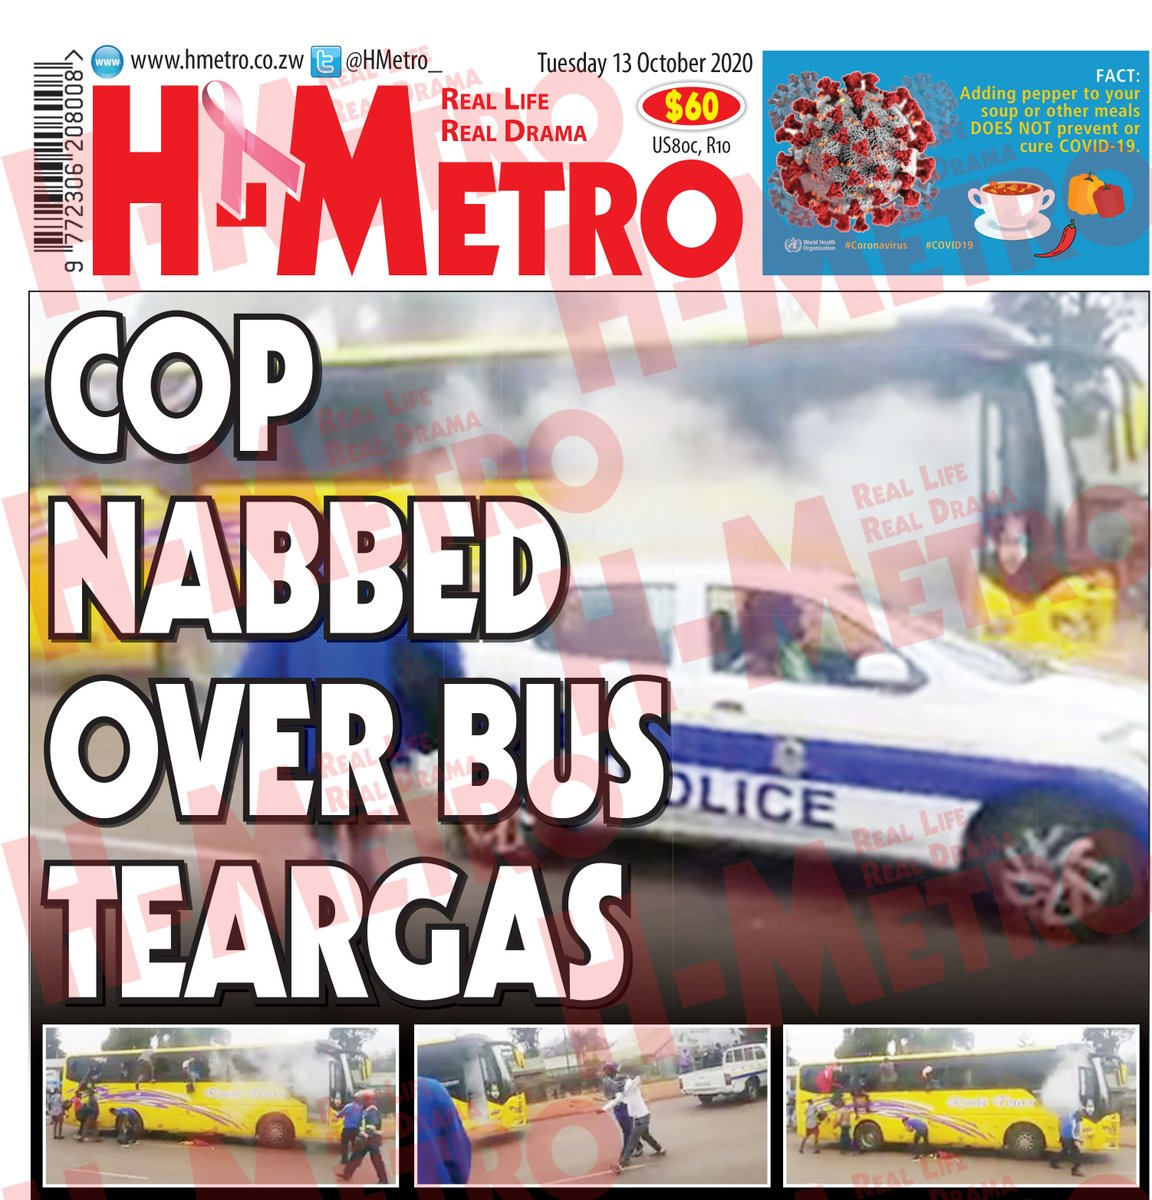 Todays @HMetro_ : 🔴Cop nabbed over bus teargas 🔴 Wife murdered over US$500 🔴22 years for raping daughters 🔴Jah Master on marriage, future 🔴Mupedzanhamo remains closed: Get more @ hmetro.co.zw